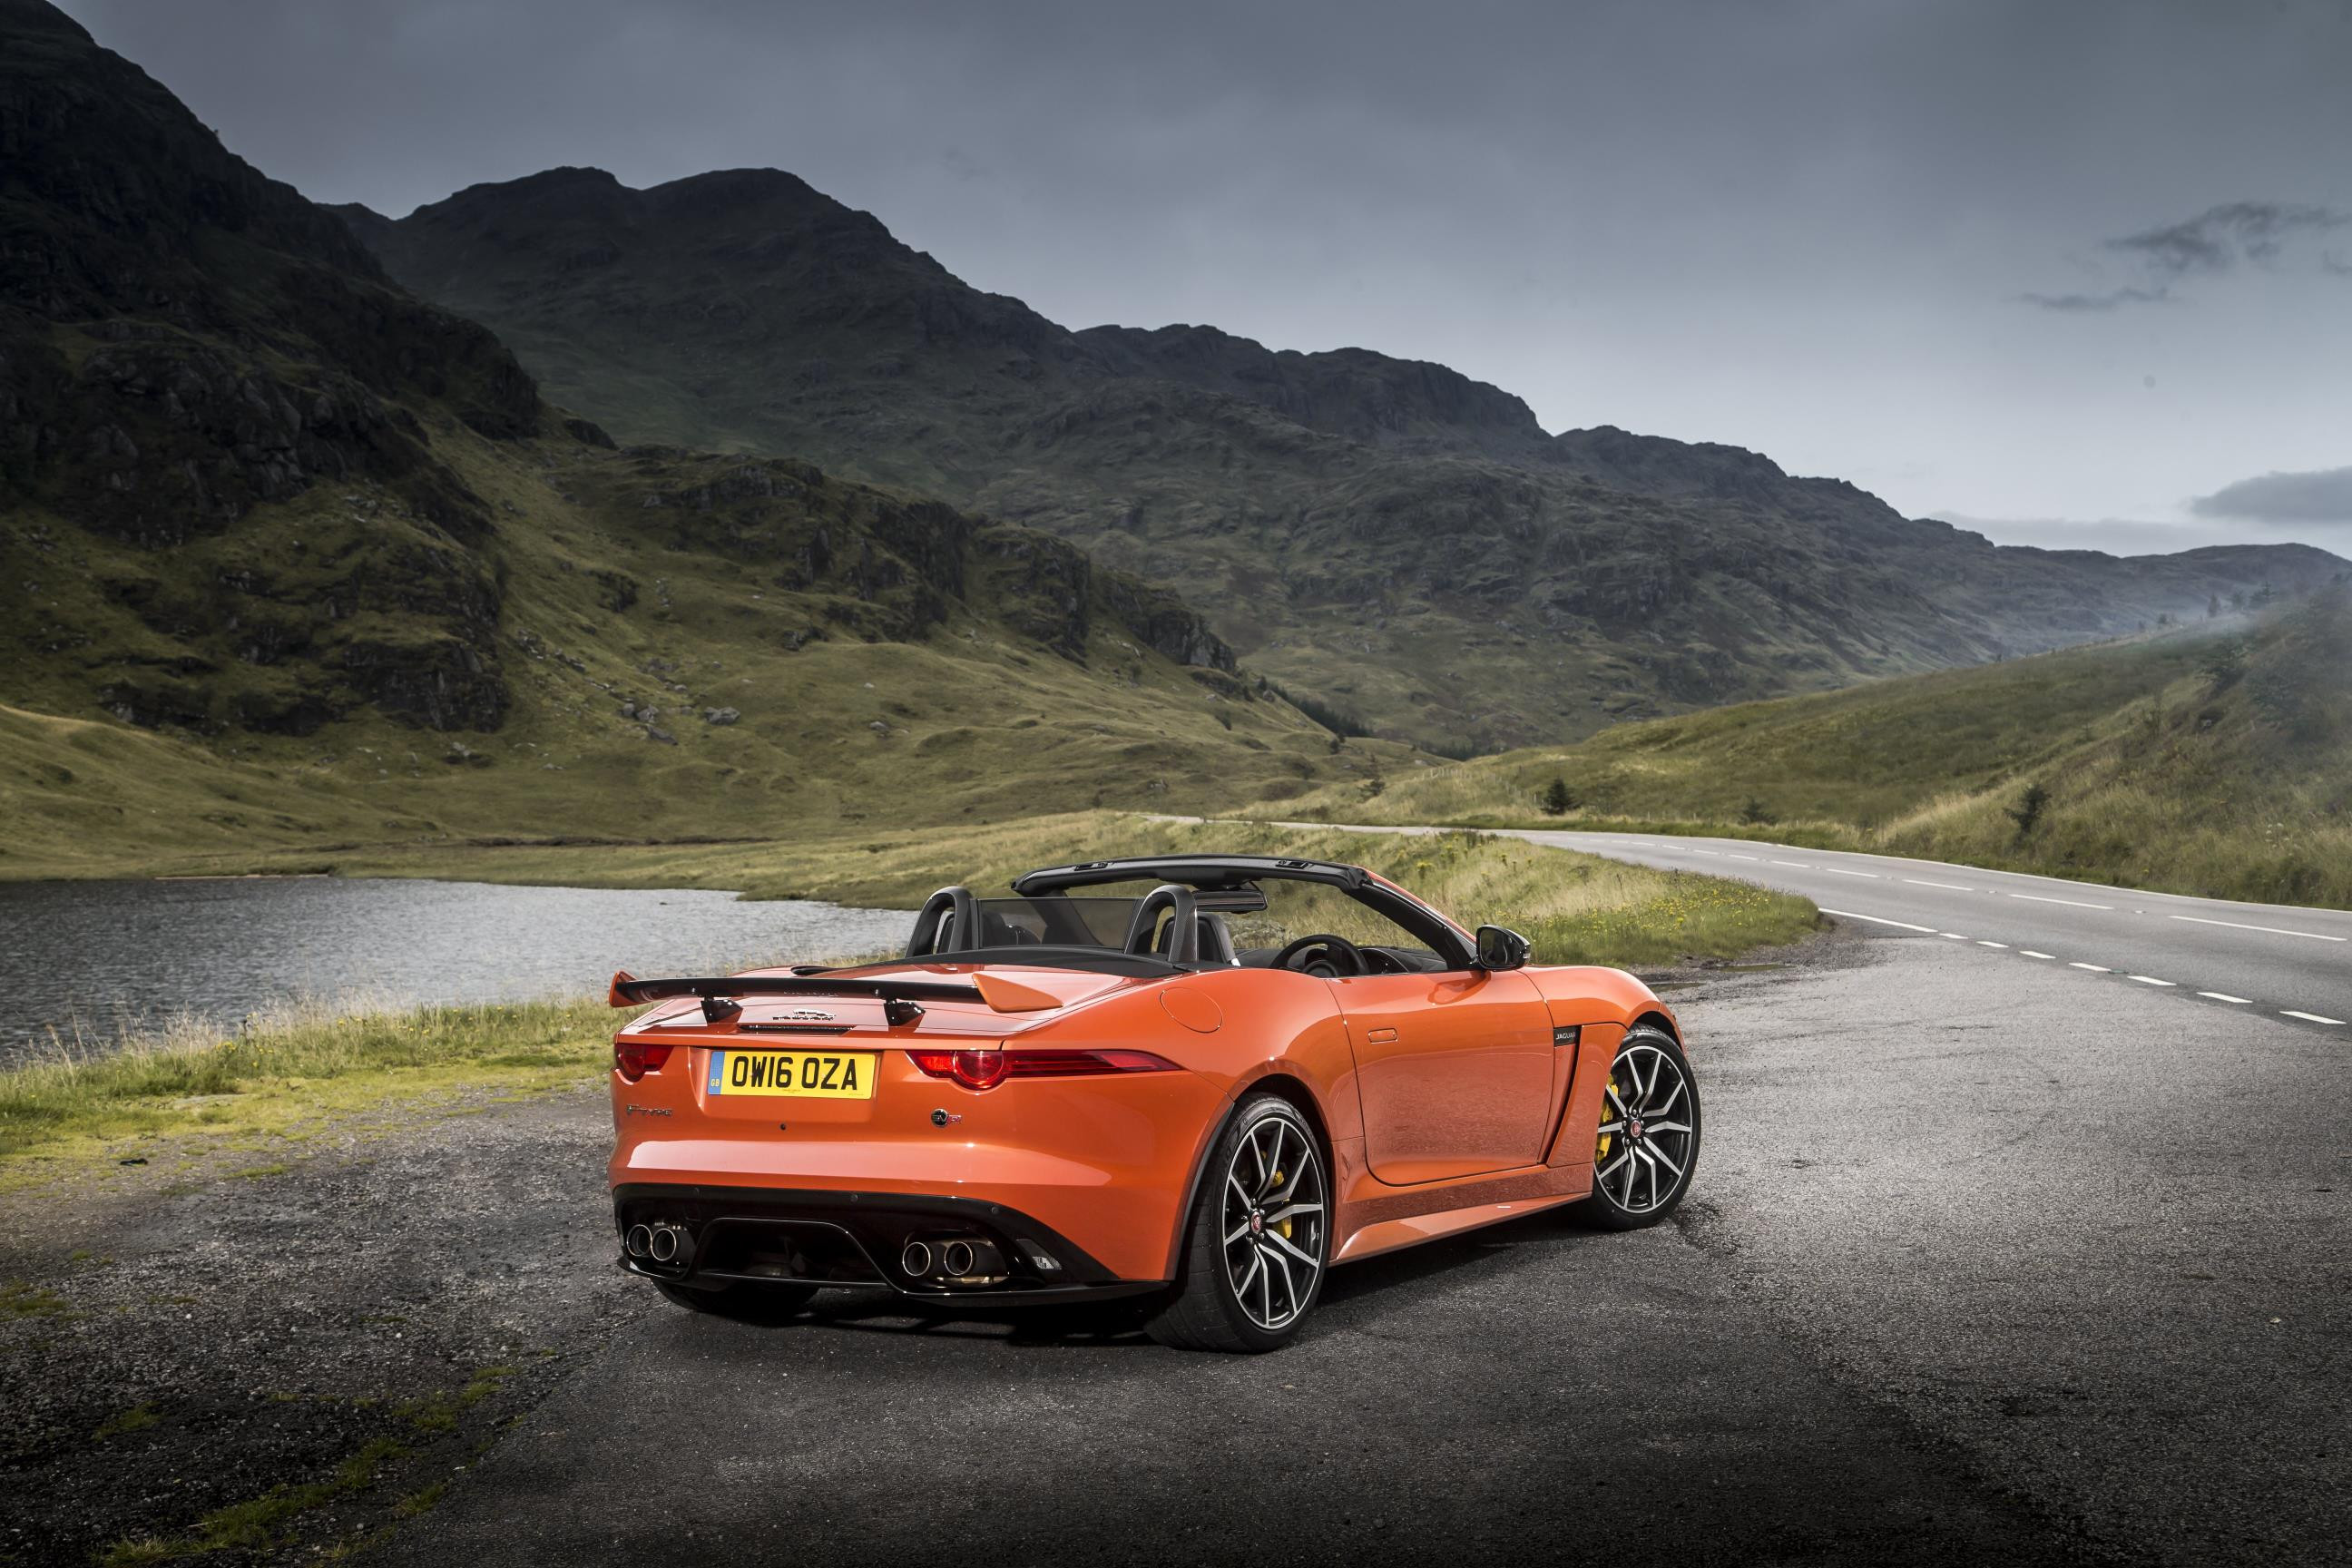 Orange Jaguar F-Type convertible in an amazing background